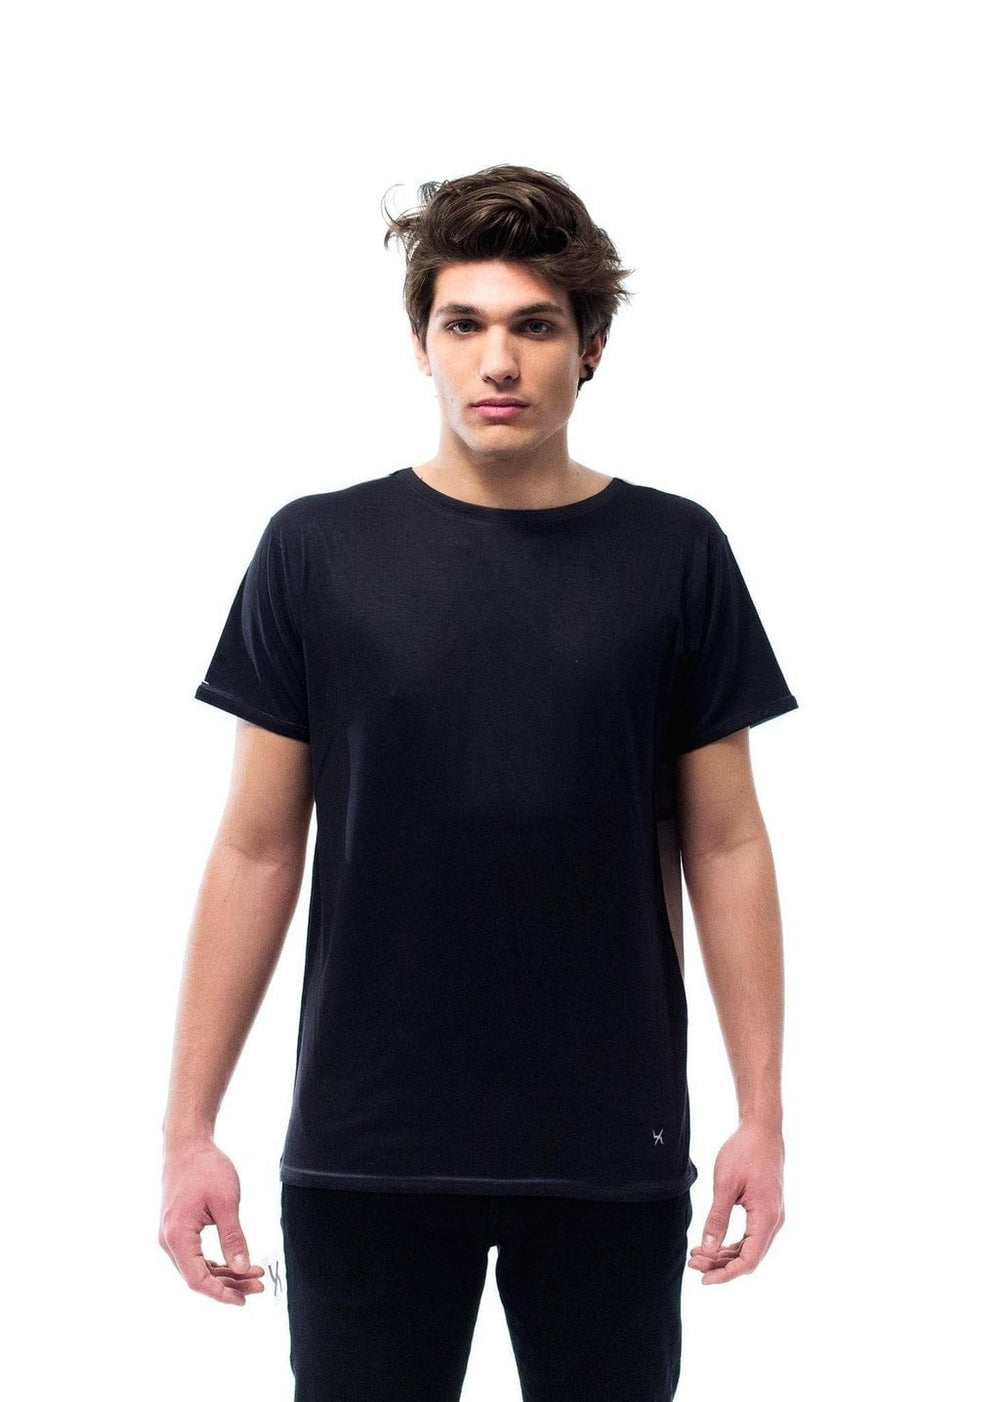 Duman - UZTZU 4-Ways Reversible T-Shirts